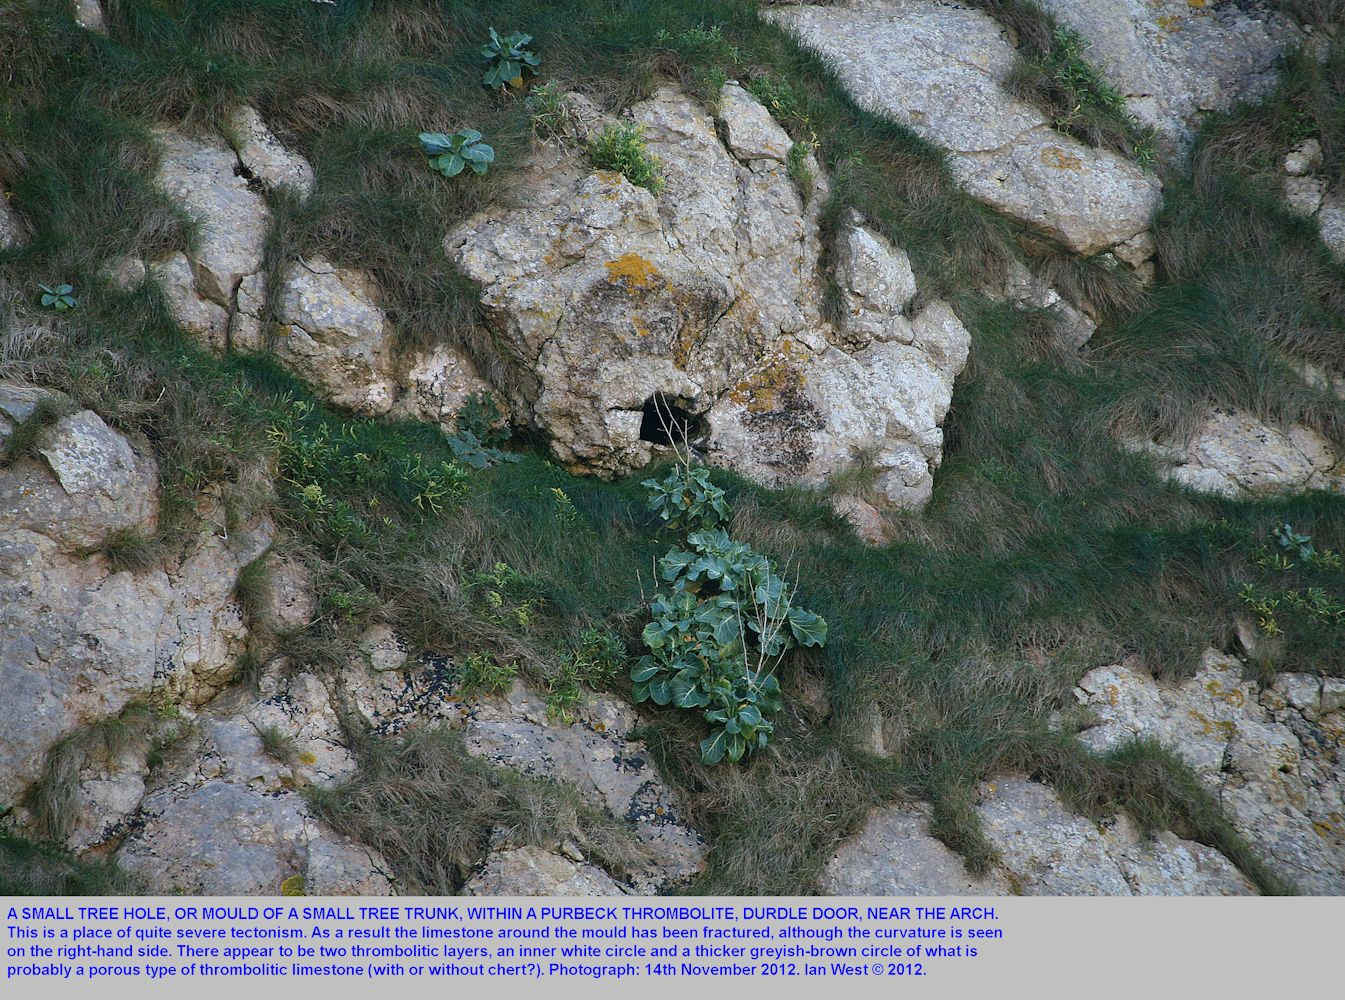 A small tree hole and surrounding thrombolite in the rock face near the arch of Durdle Door, Lulworth, Dorset, 14th November 2012